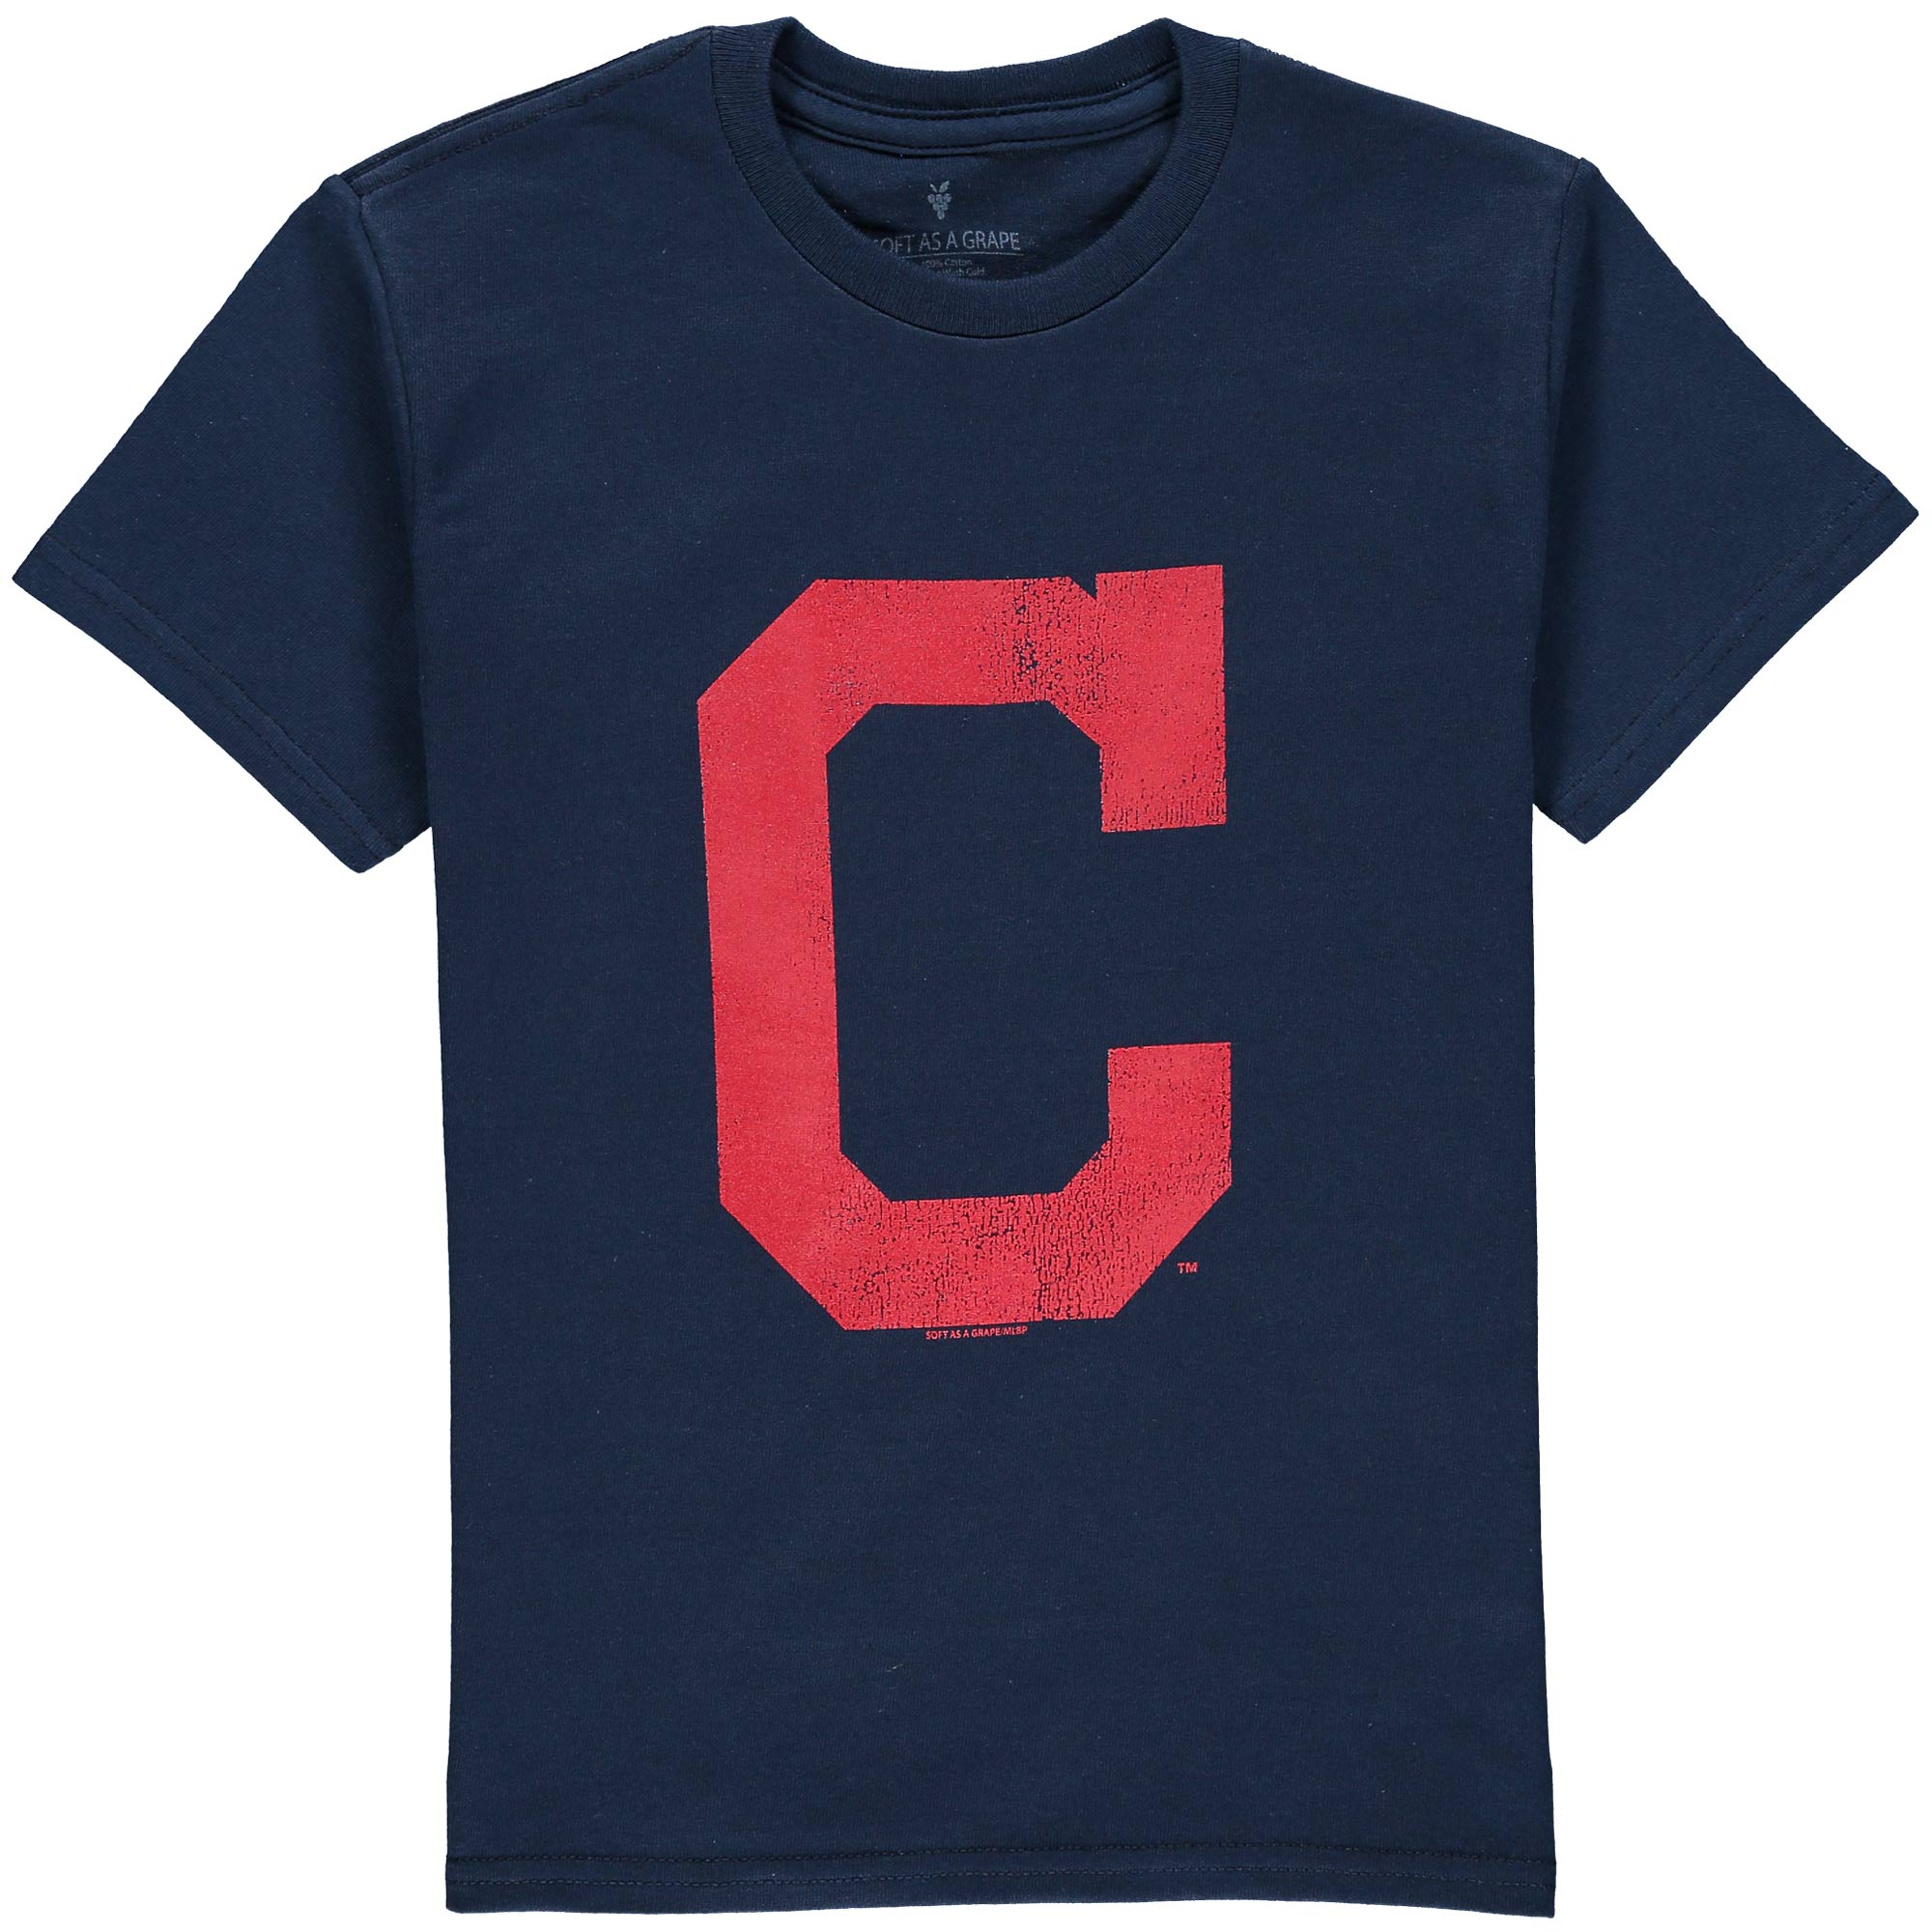 Cleveland Indians Soft as a Grape Youth Distressed Logo T-Shirt - Navy